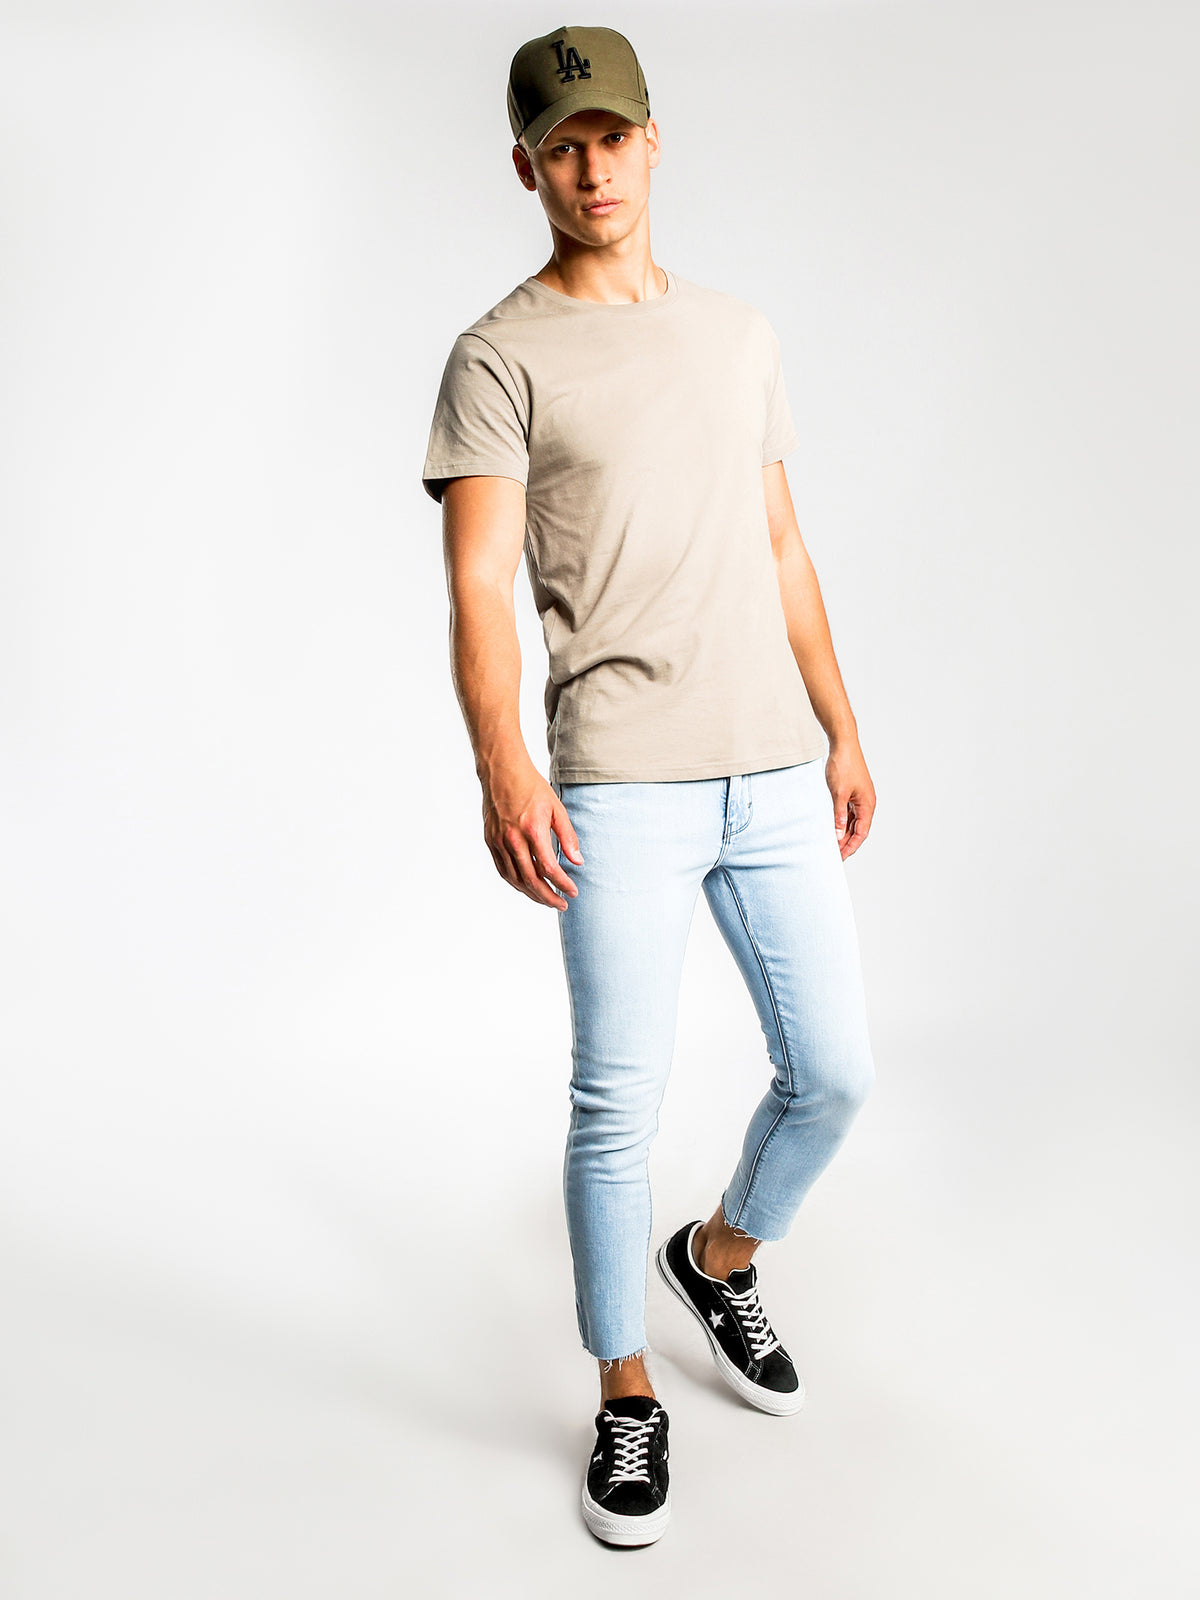 A Dropped Skinny Turn Up Jeans in Chill Blue Denim